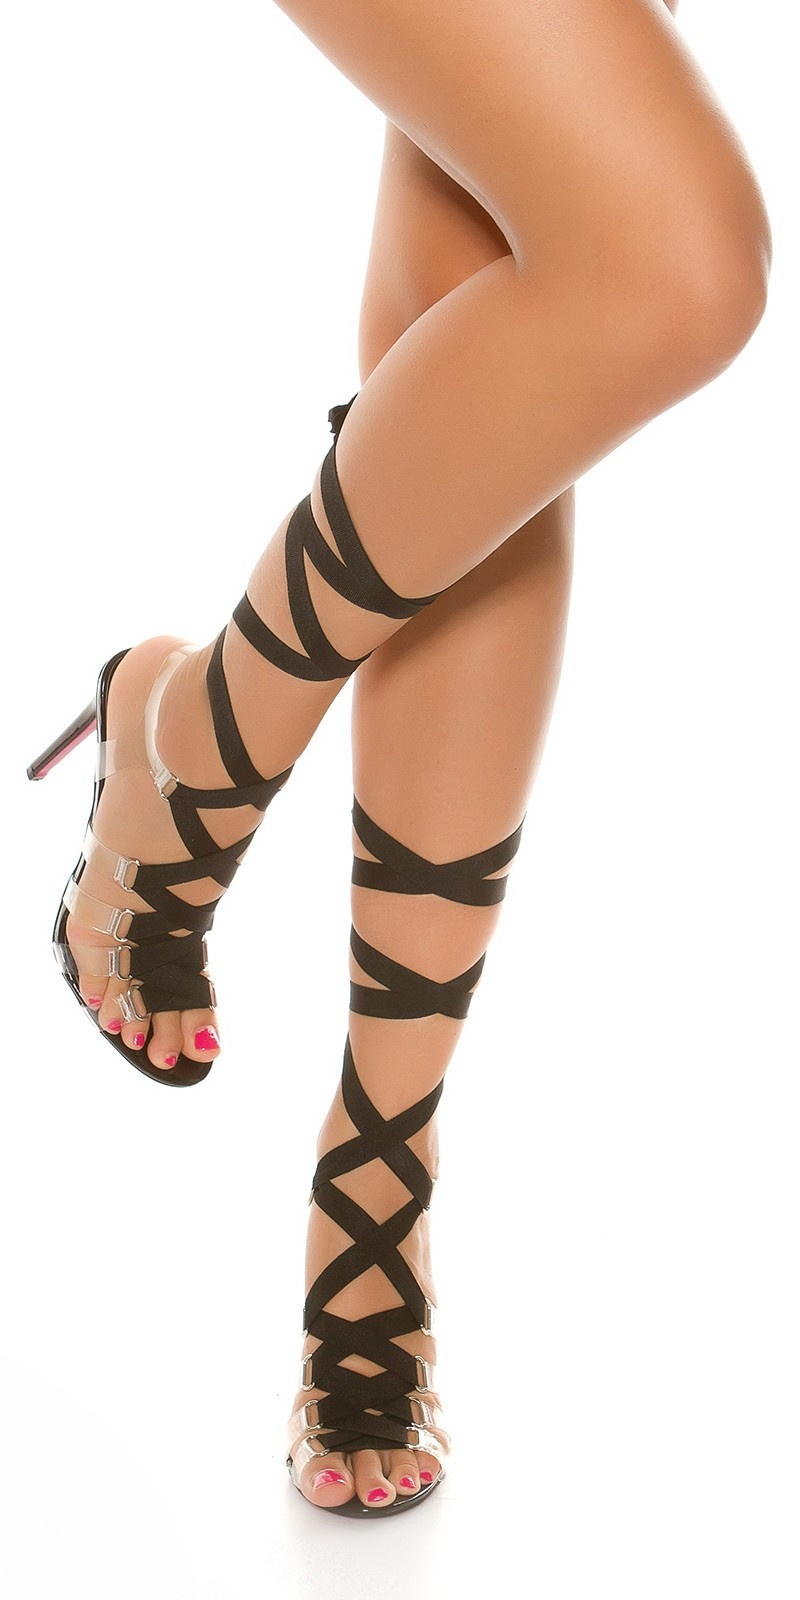 Sexy Bondage High Heel Sandals Black